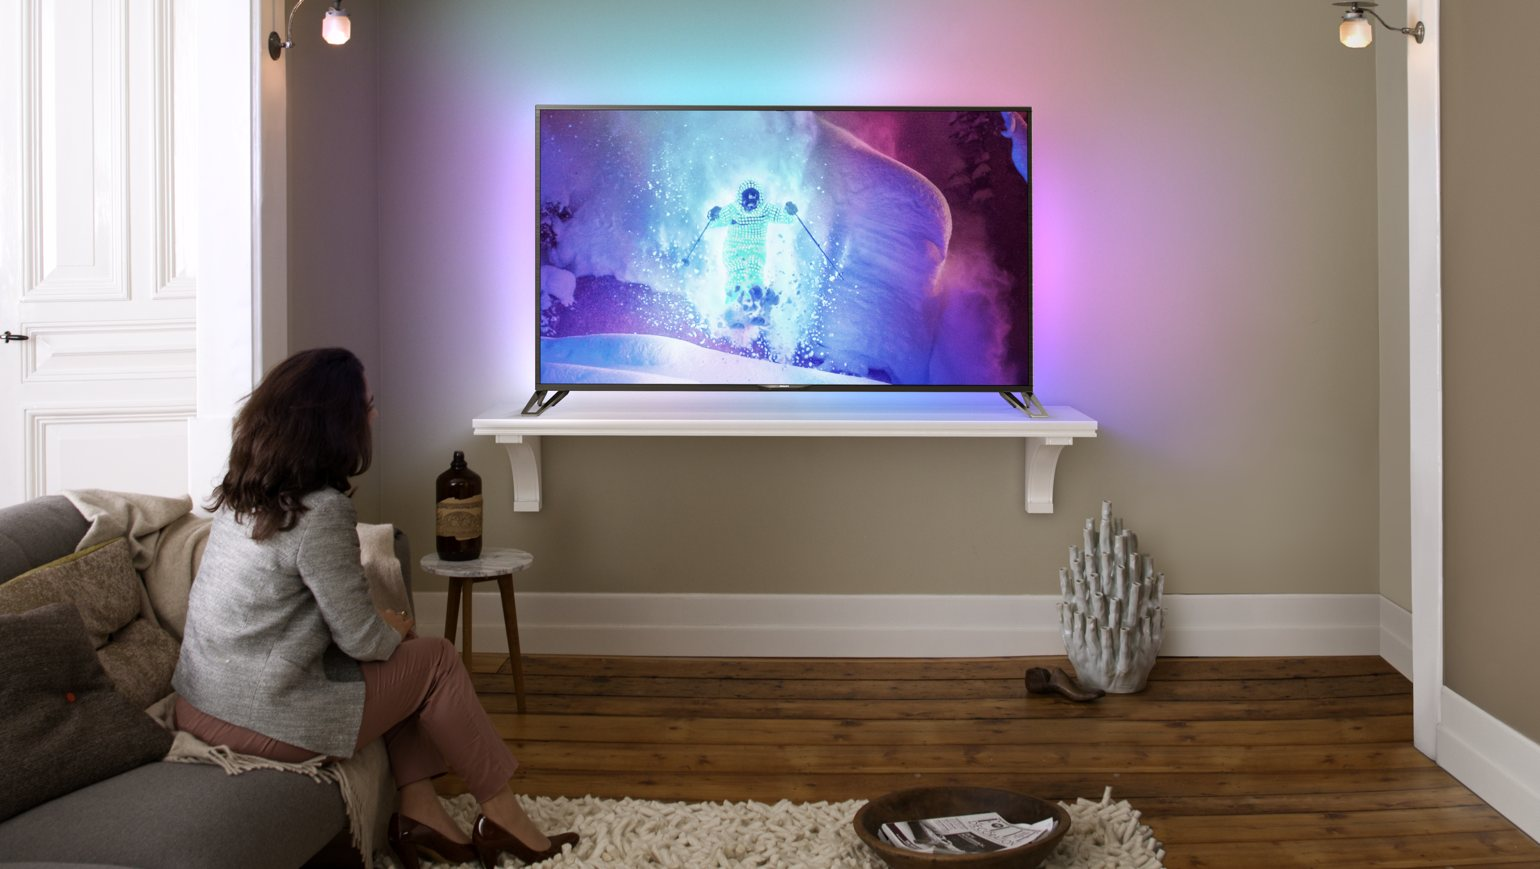 Philips 65PUS9809 UHD Ambilight TV powered by Android